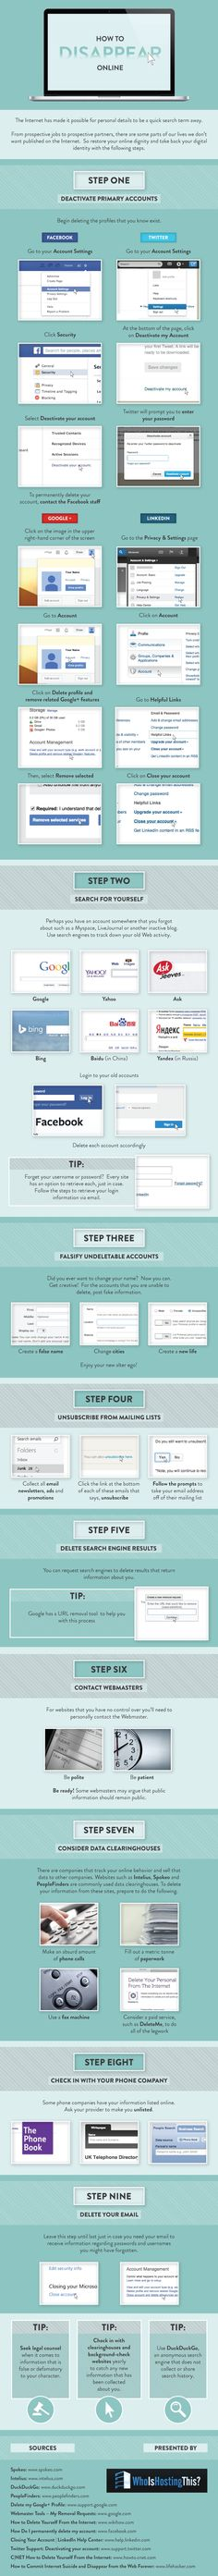 Infografika: How to Disappear Online